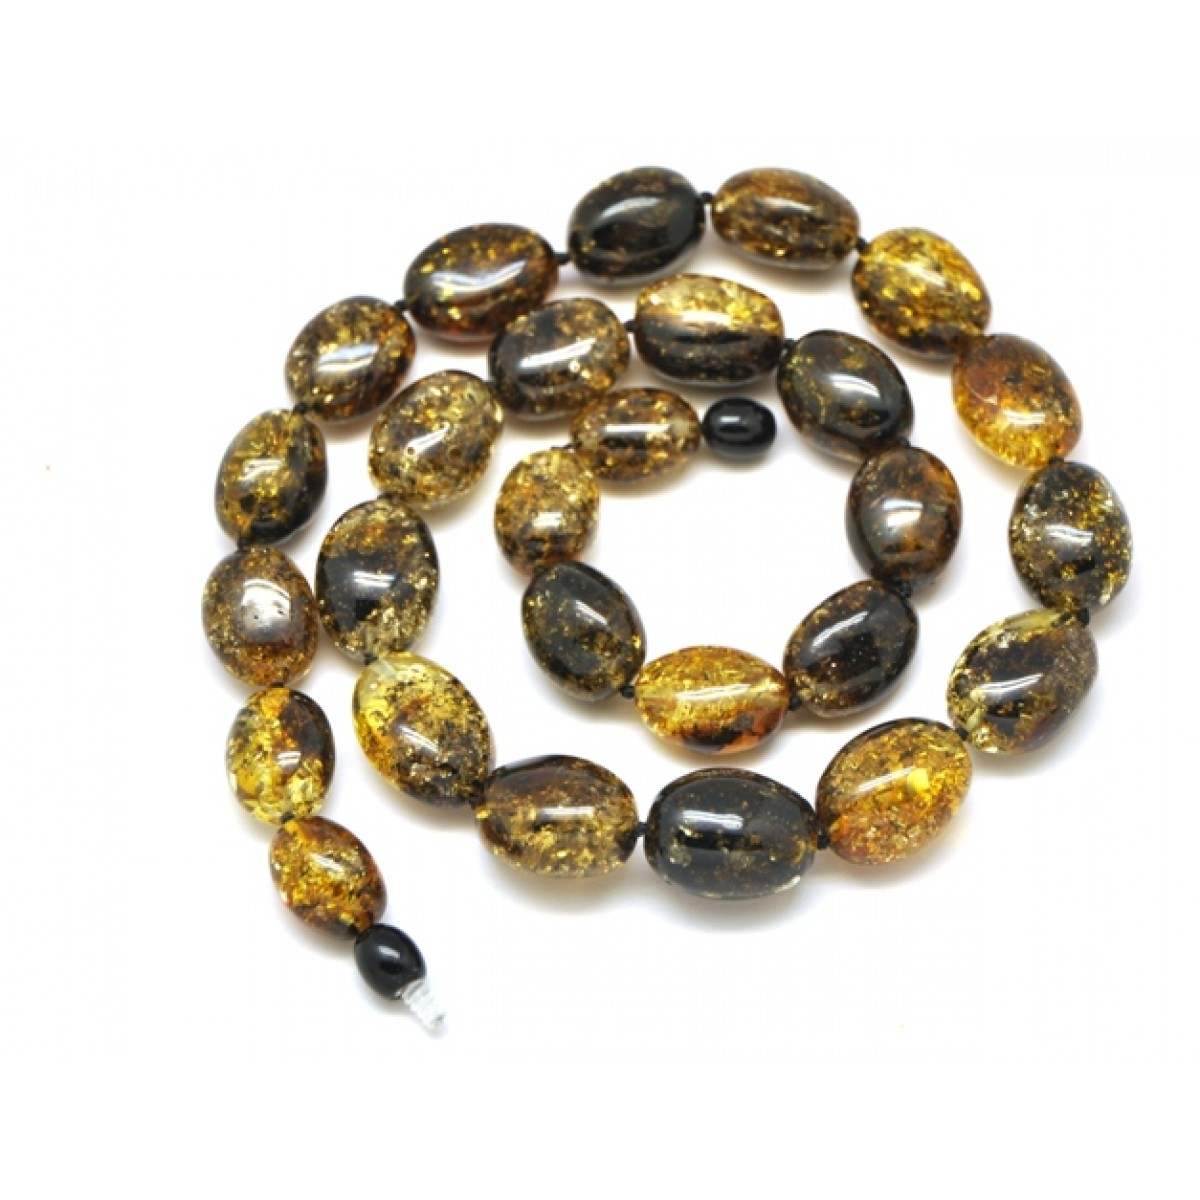 Olive Garden With Amberstone: Green Olive Shape Baltic Amber Necklace - 99.78€